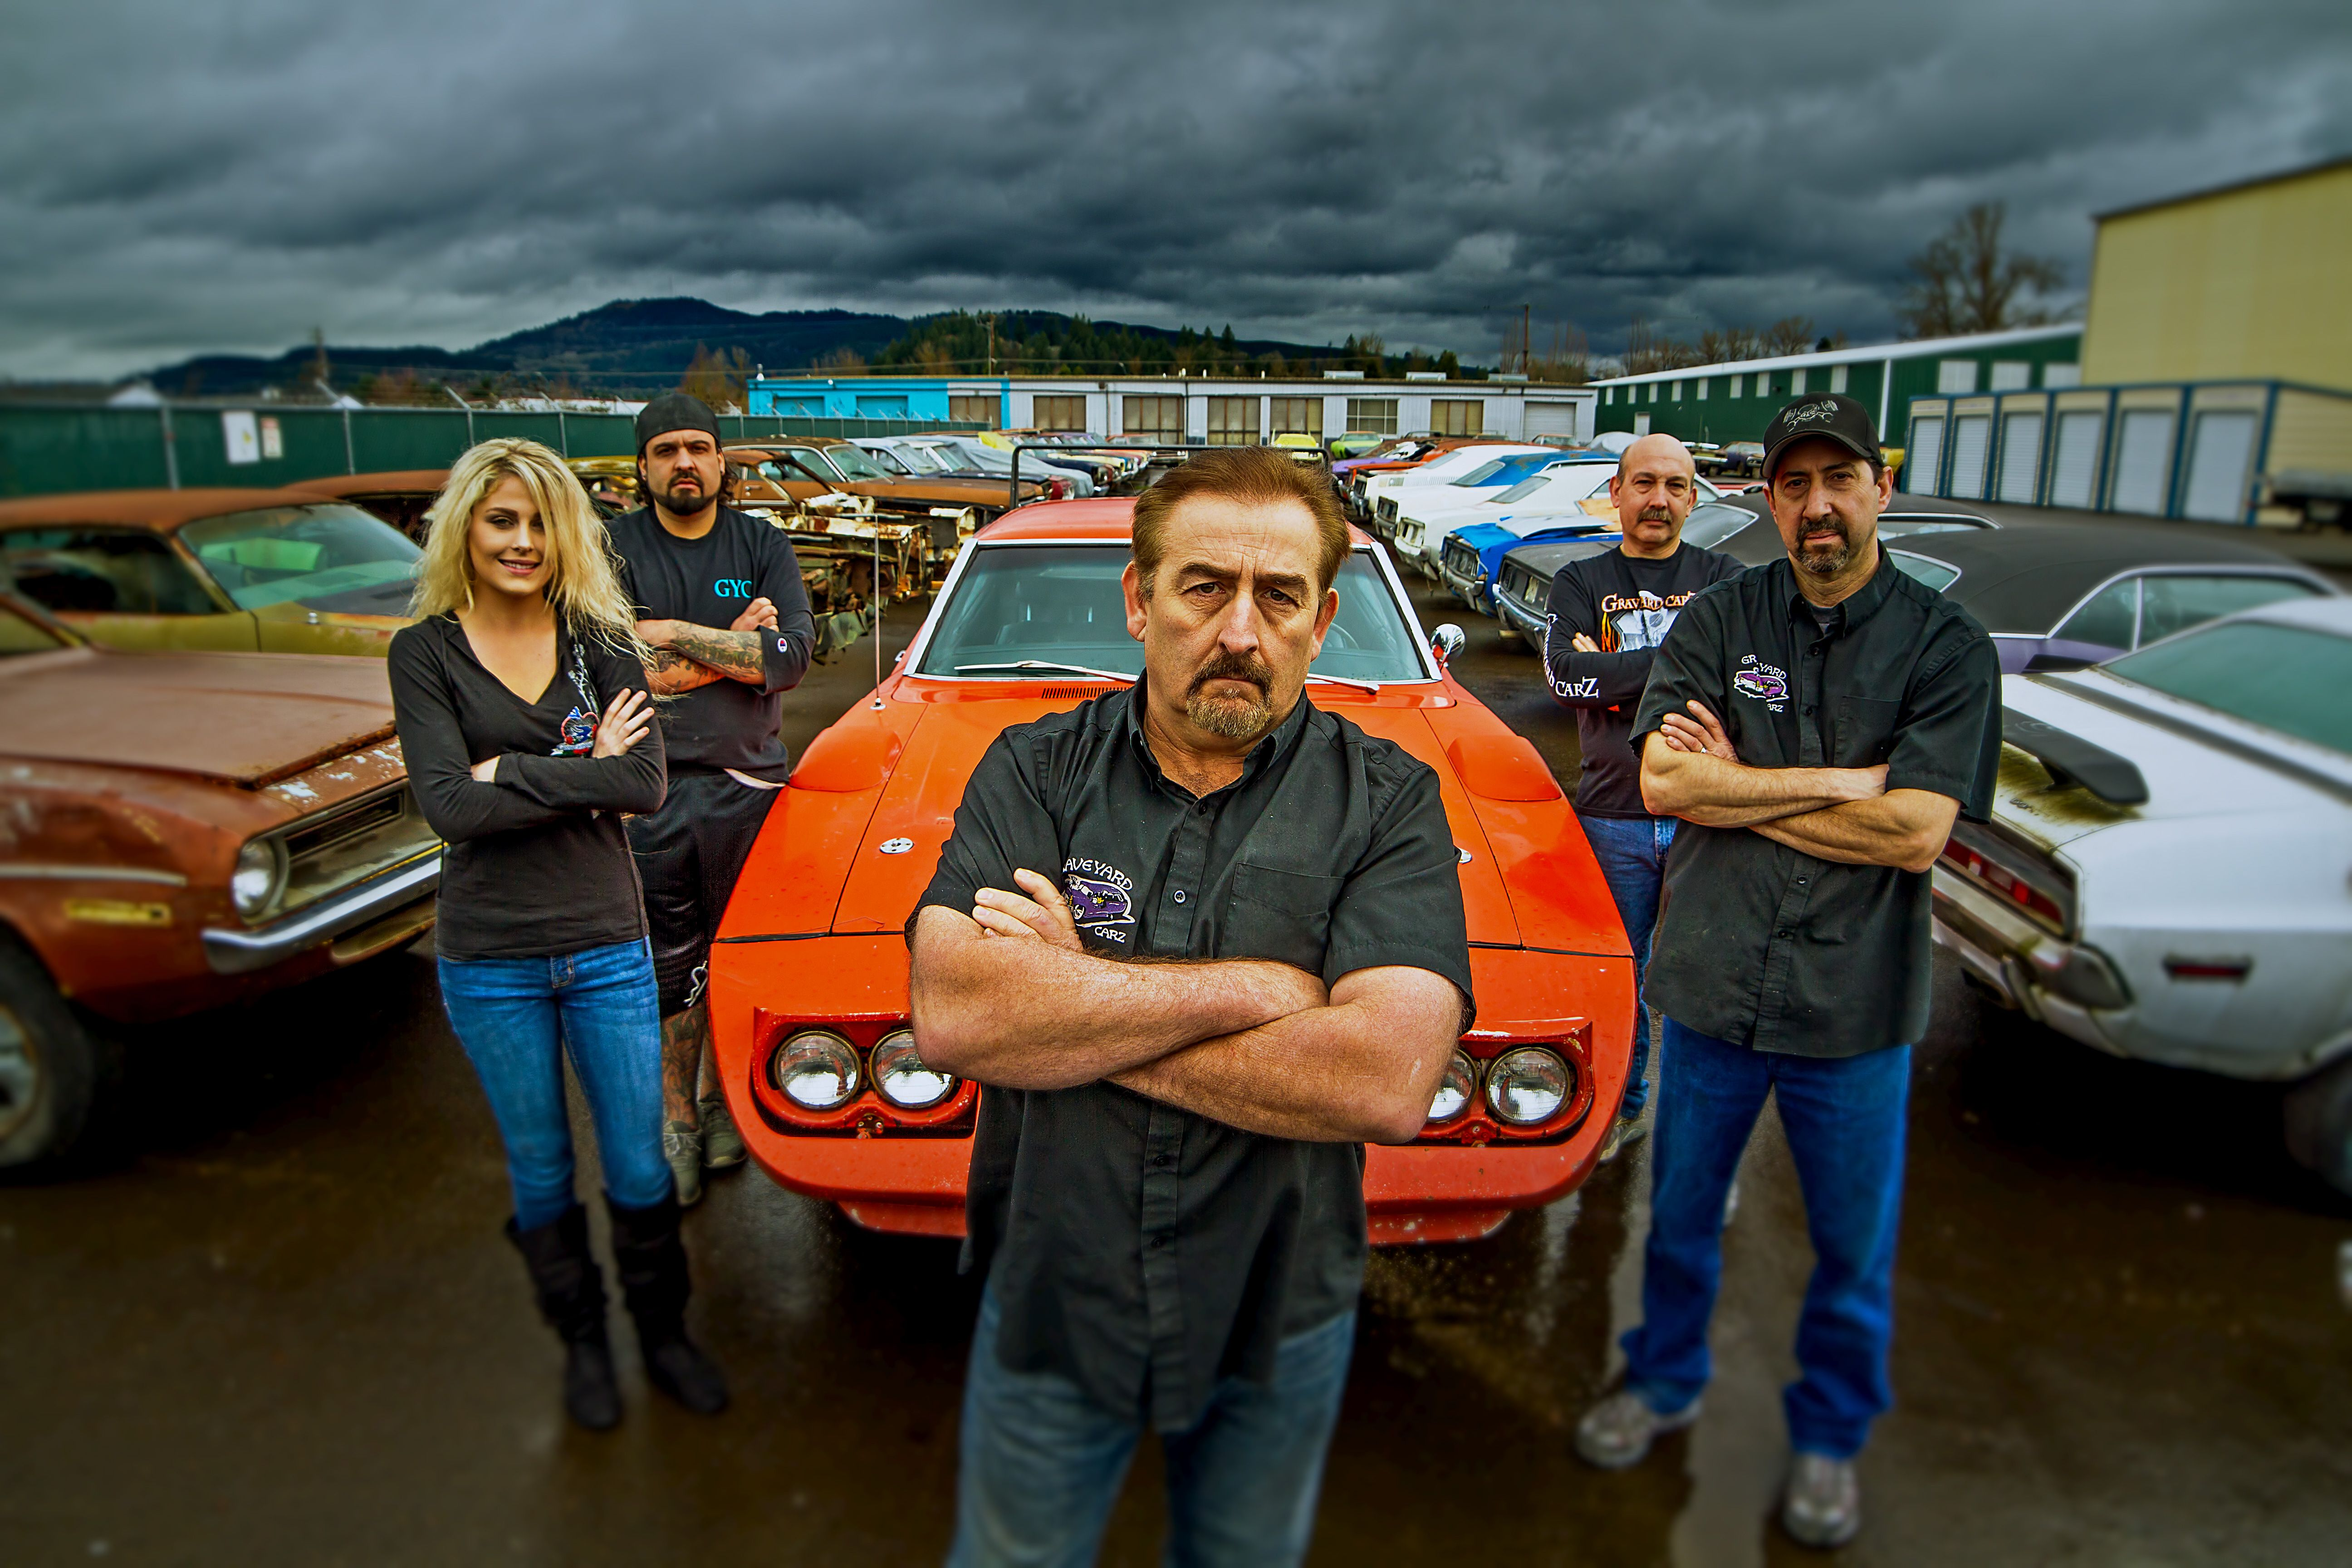 Graveyard carz is an american automotive reality tv show that restores late 1960s early 1970s